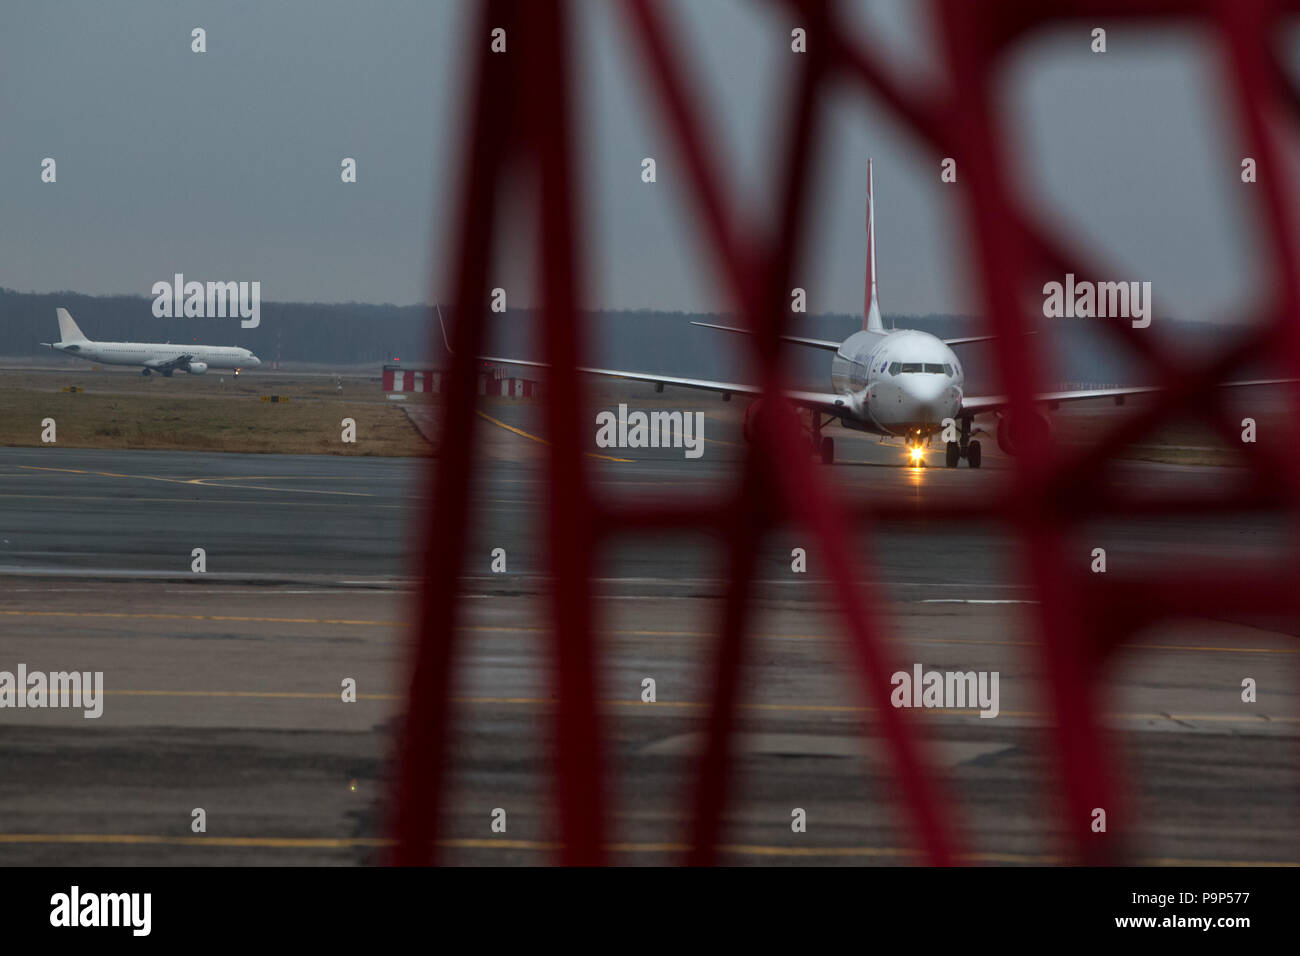 Civil aircraft pictured taxiing to the terminal after arrival at Domodedovo airport, Moscow, Russia - Stock Image